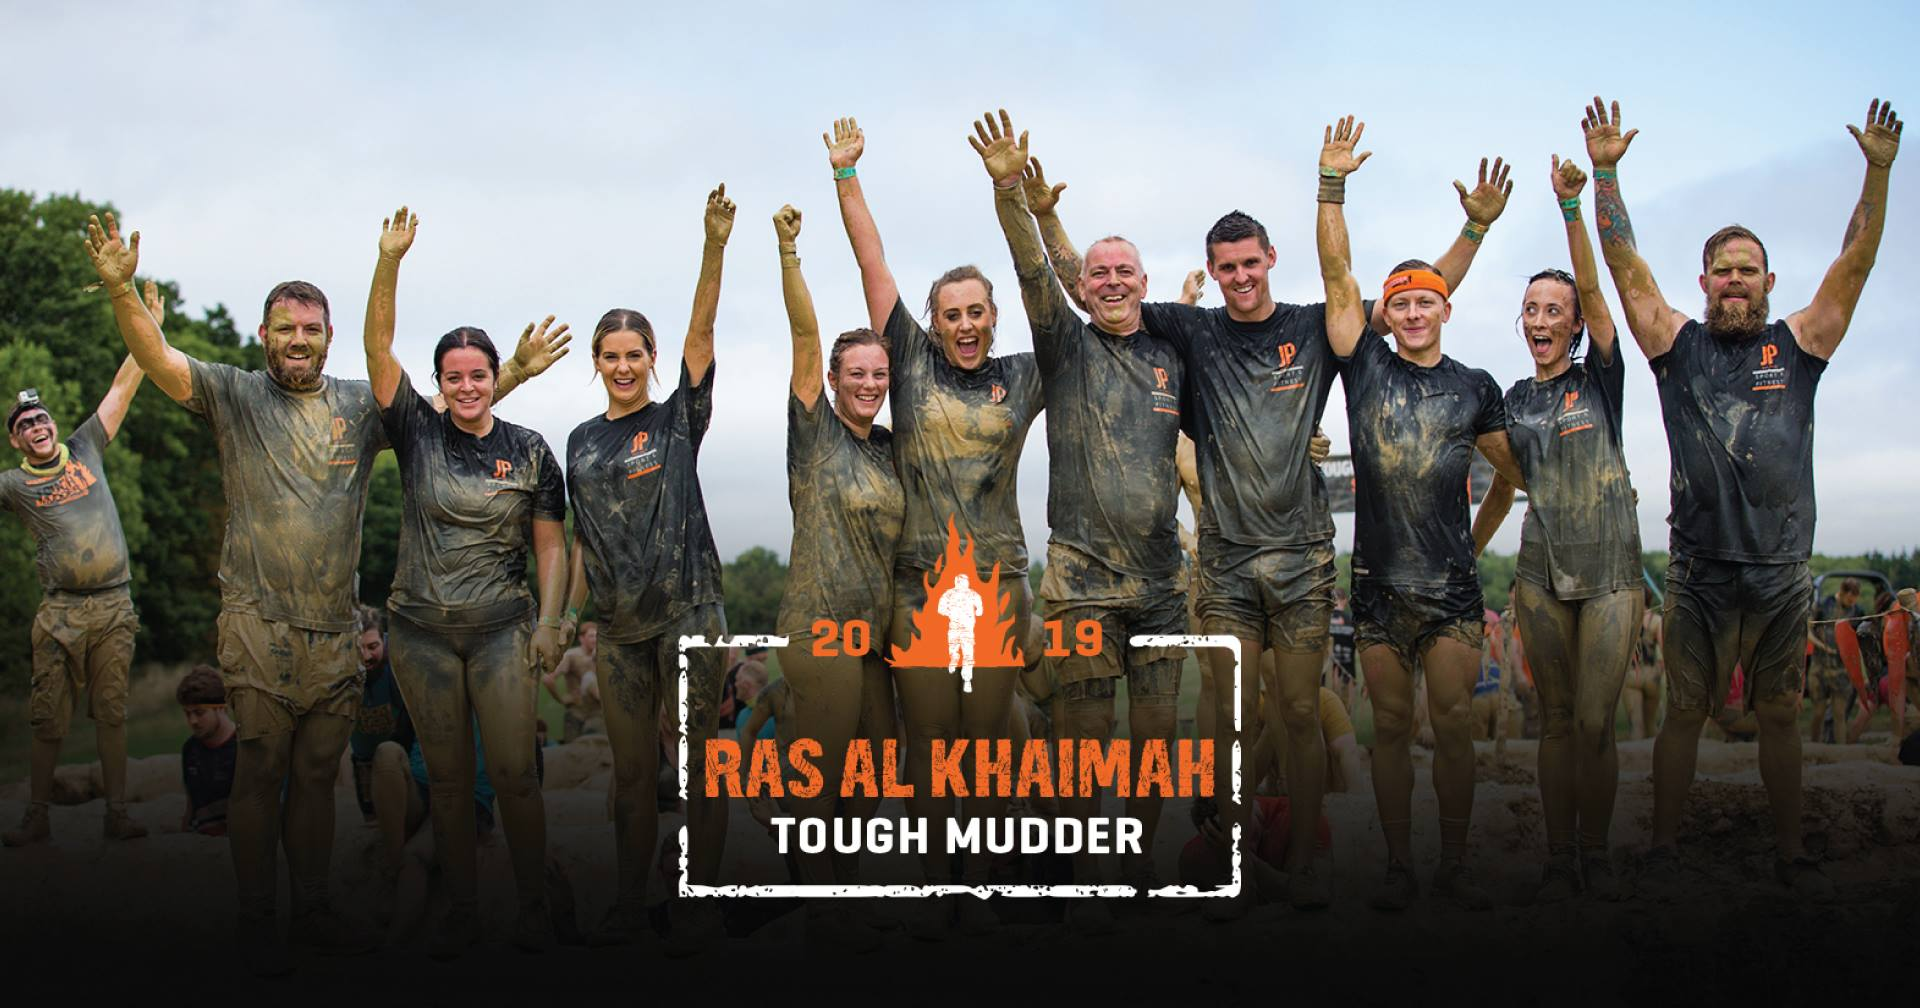 tough-mudder-ras-al-khaimah